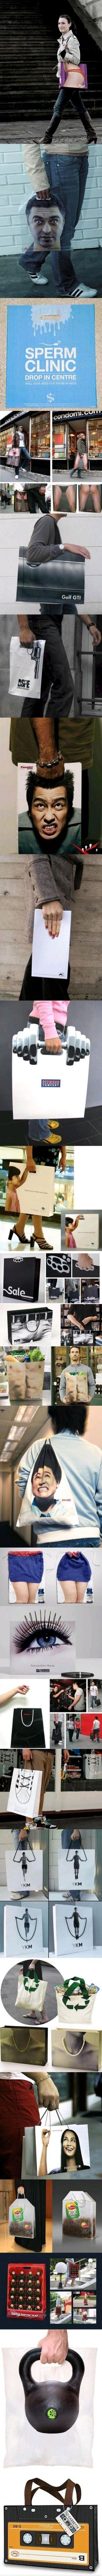 Funny Funny Pictures - Epic shopping bags - Funny Pictures, MEME, LOL